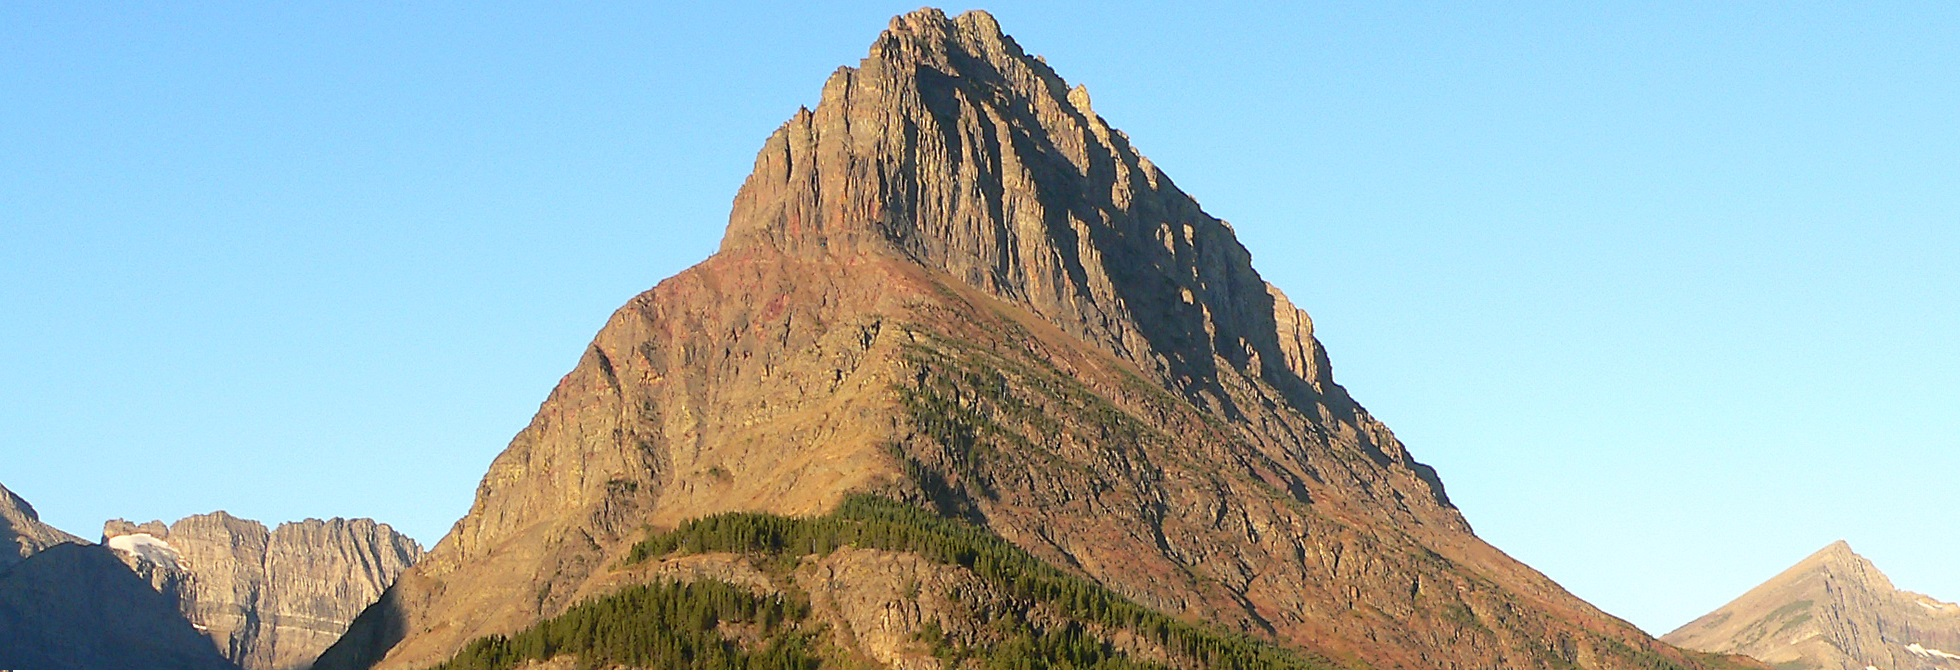 Climber dies from fall near grinnell point montana for Peak fishing times for today